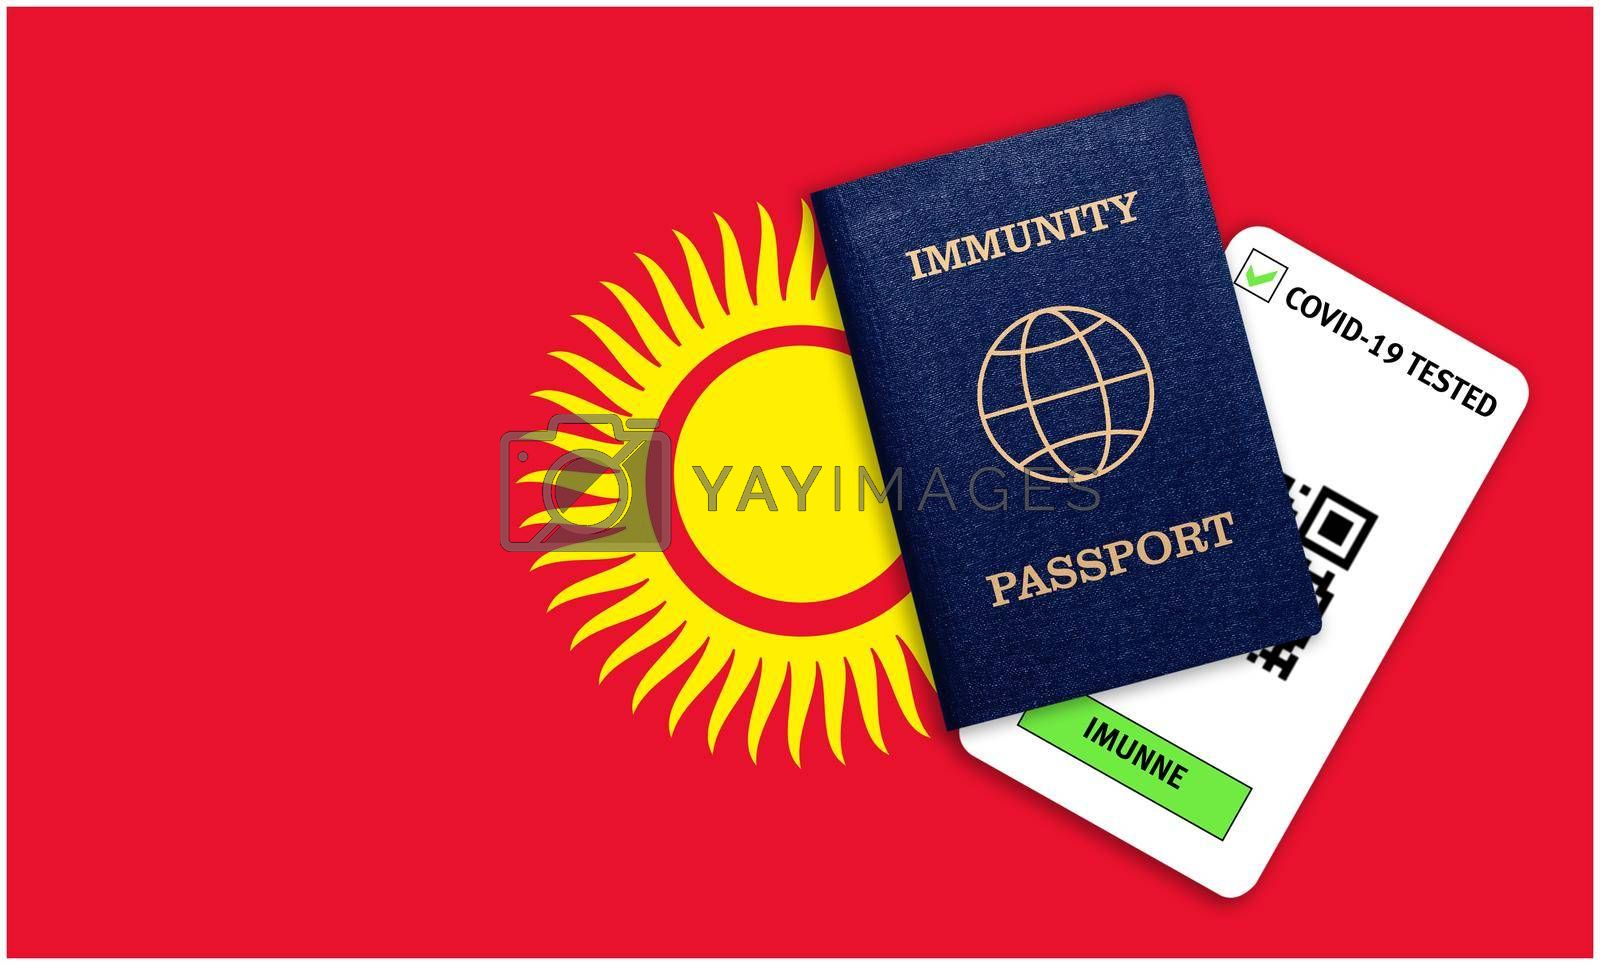 Concept of Immunity passport, certificate for traveling after pandemic for people who have had coronavirus or made vaccine and test result for COVID-19 on flag of Kyrgyzstan